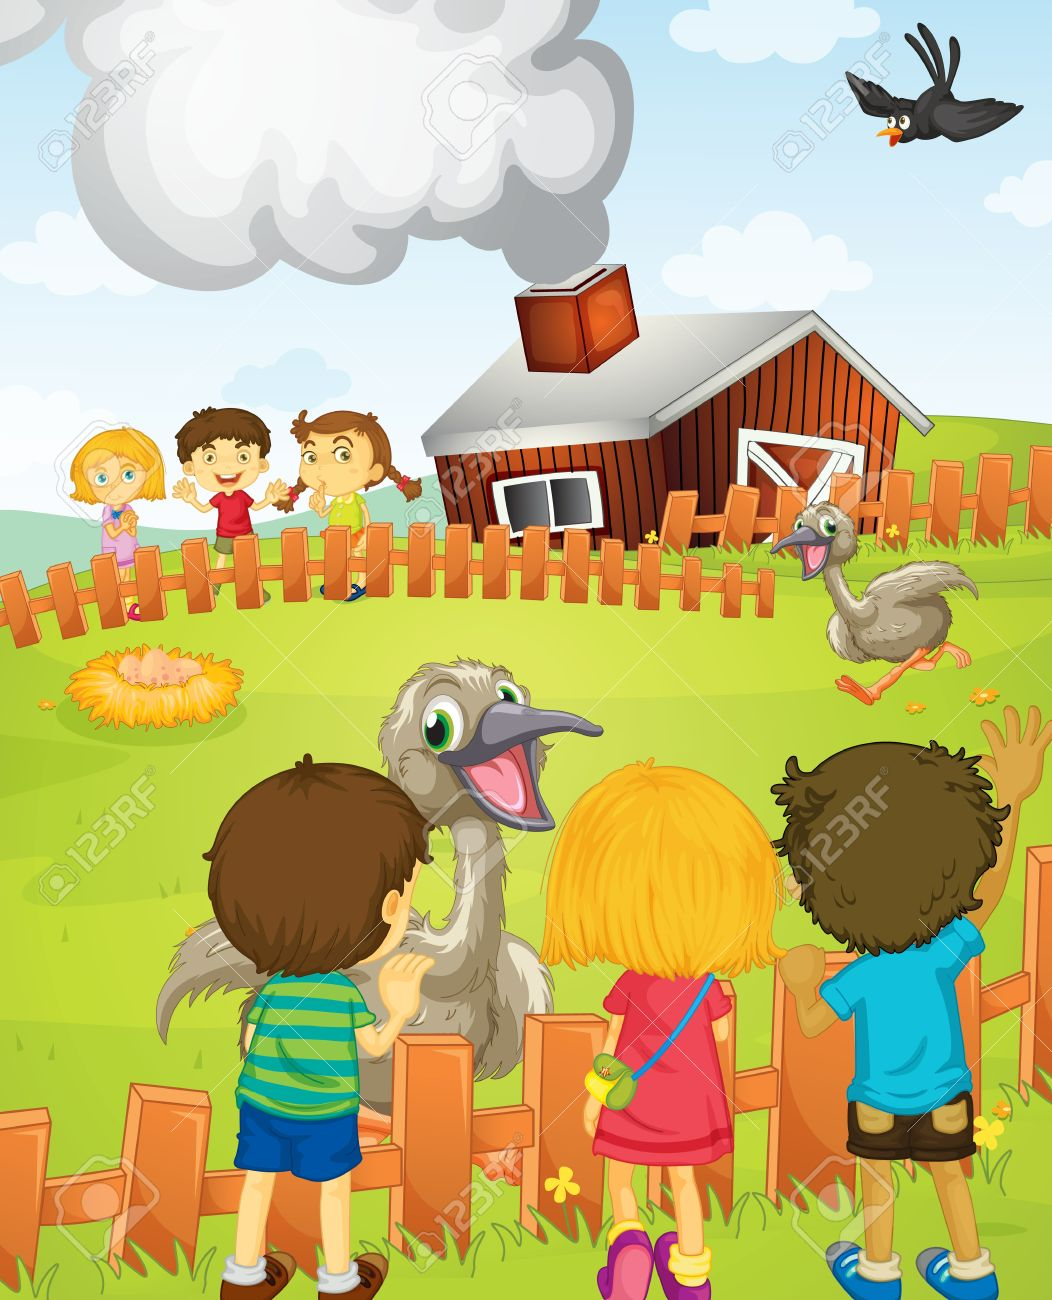 Illustration Of Kids At The Farm Royalty Free Cliparts, Vectors.